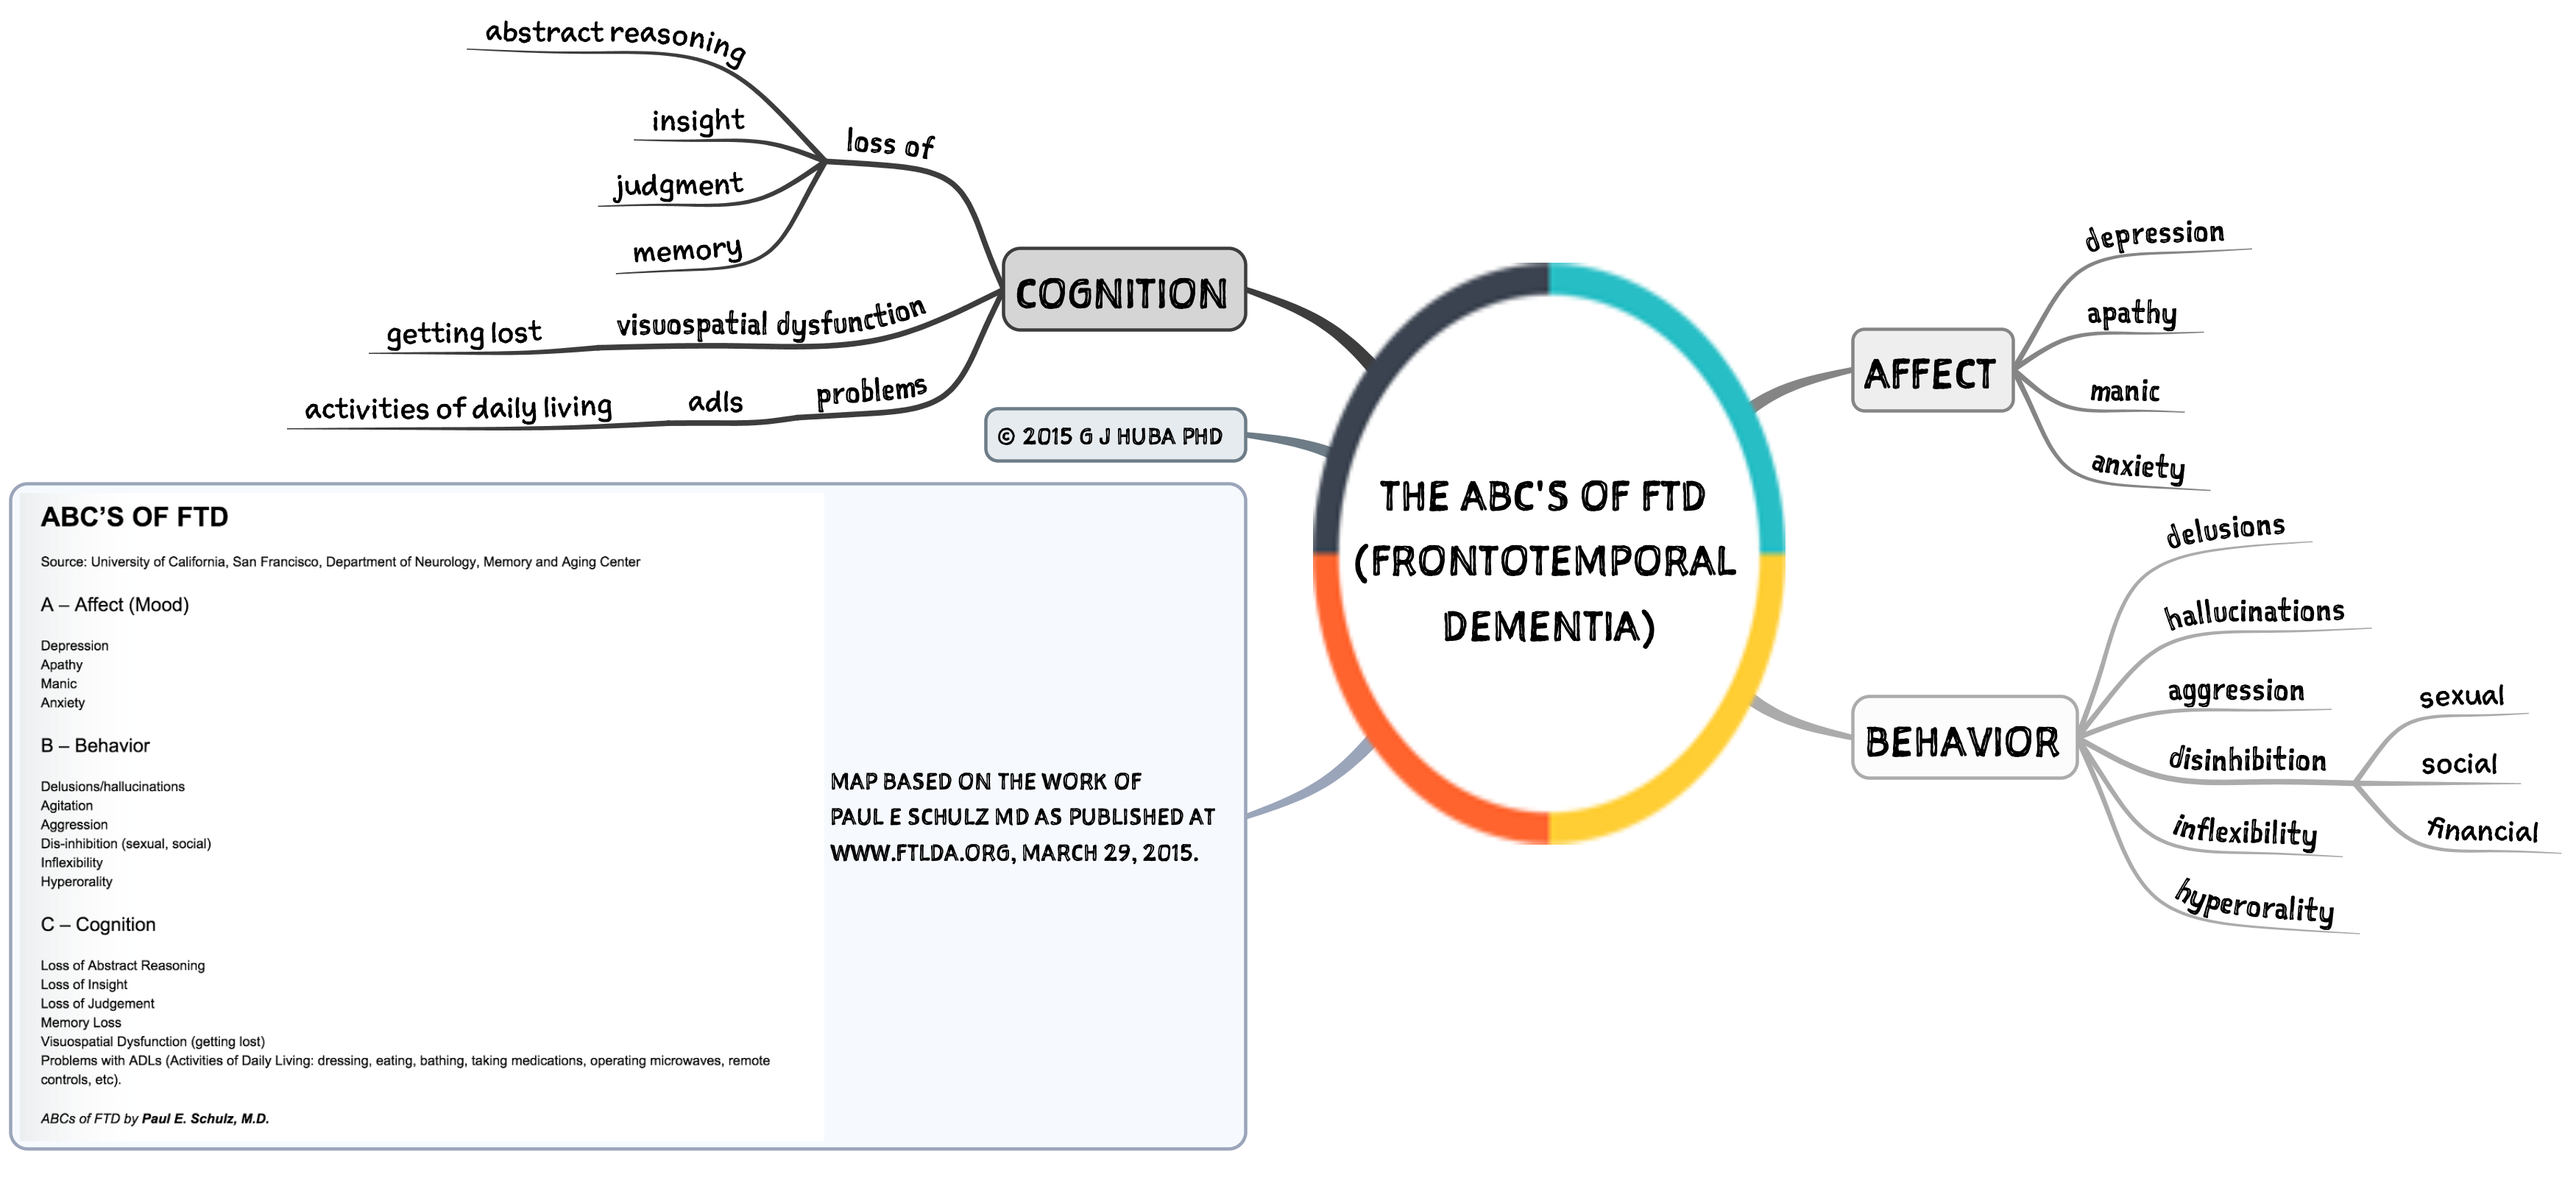 The ABC's of FTD (frontotemporal dementia)